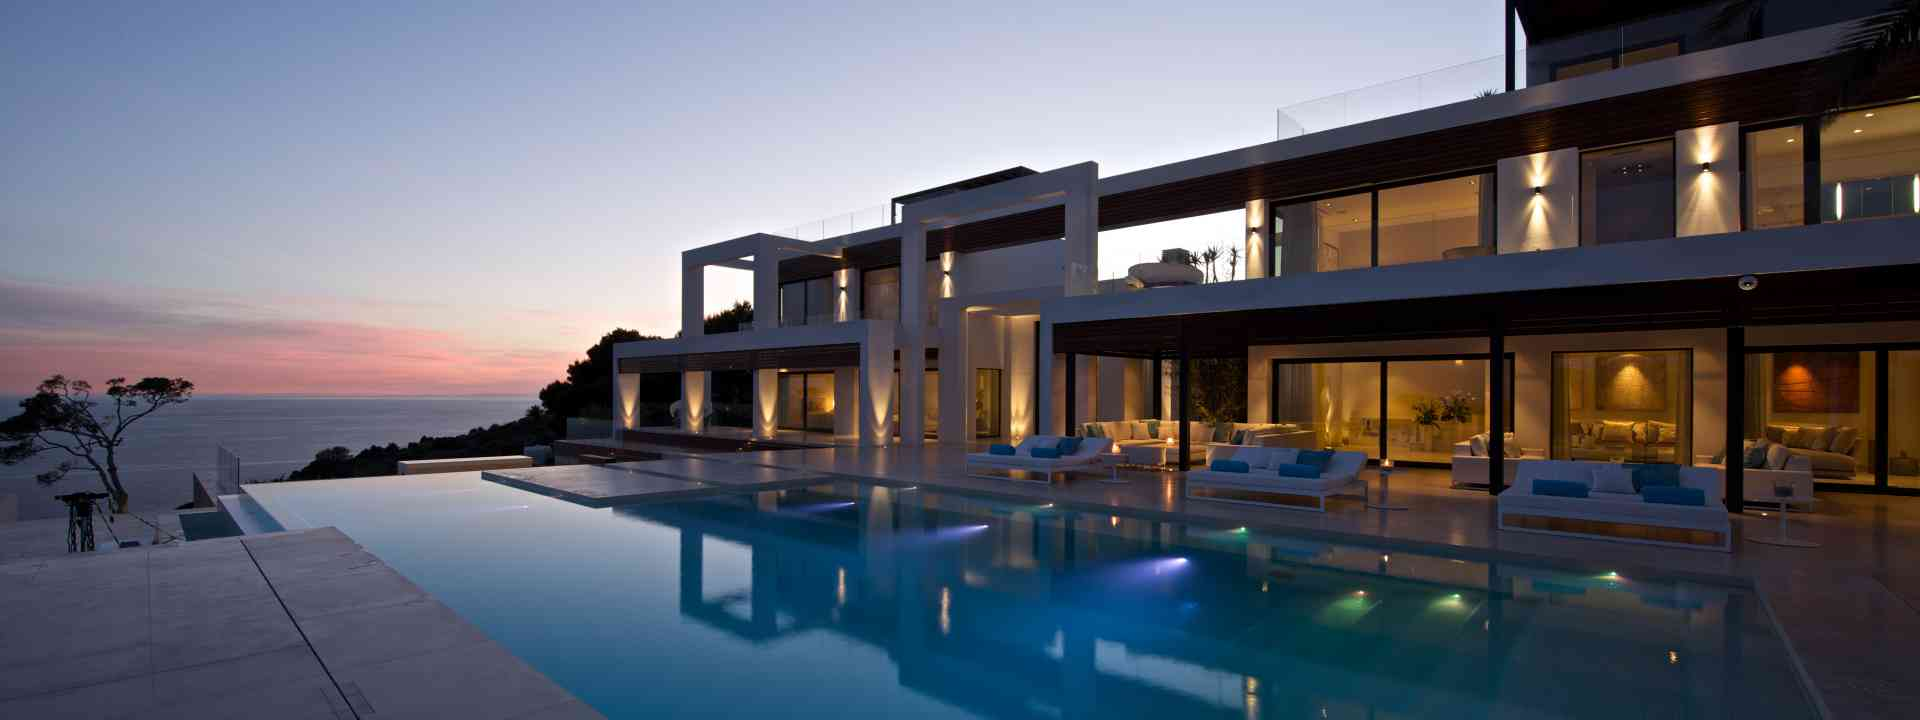 Luxury-outstanding-holiday-villa-Andratx-in-Mallorca